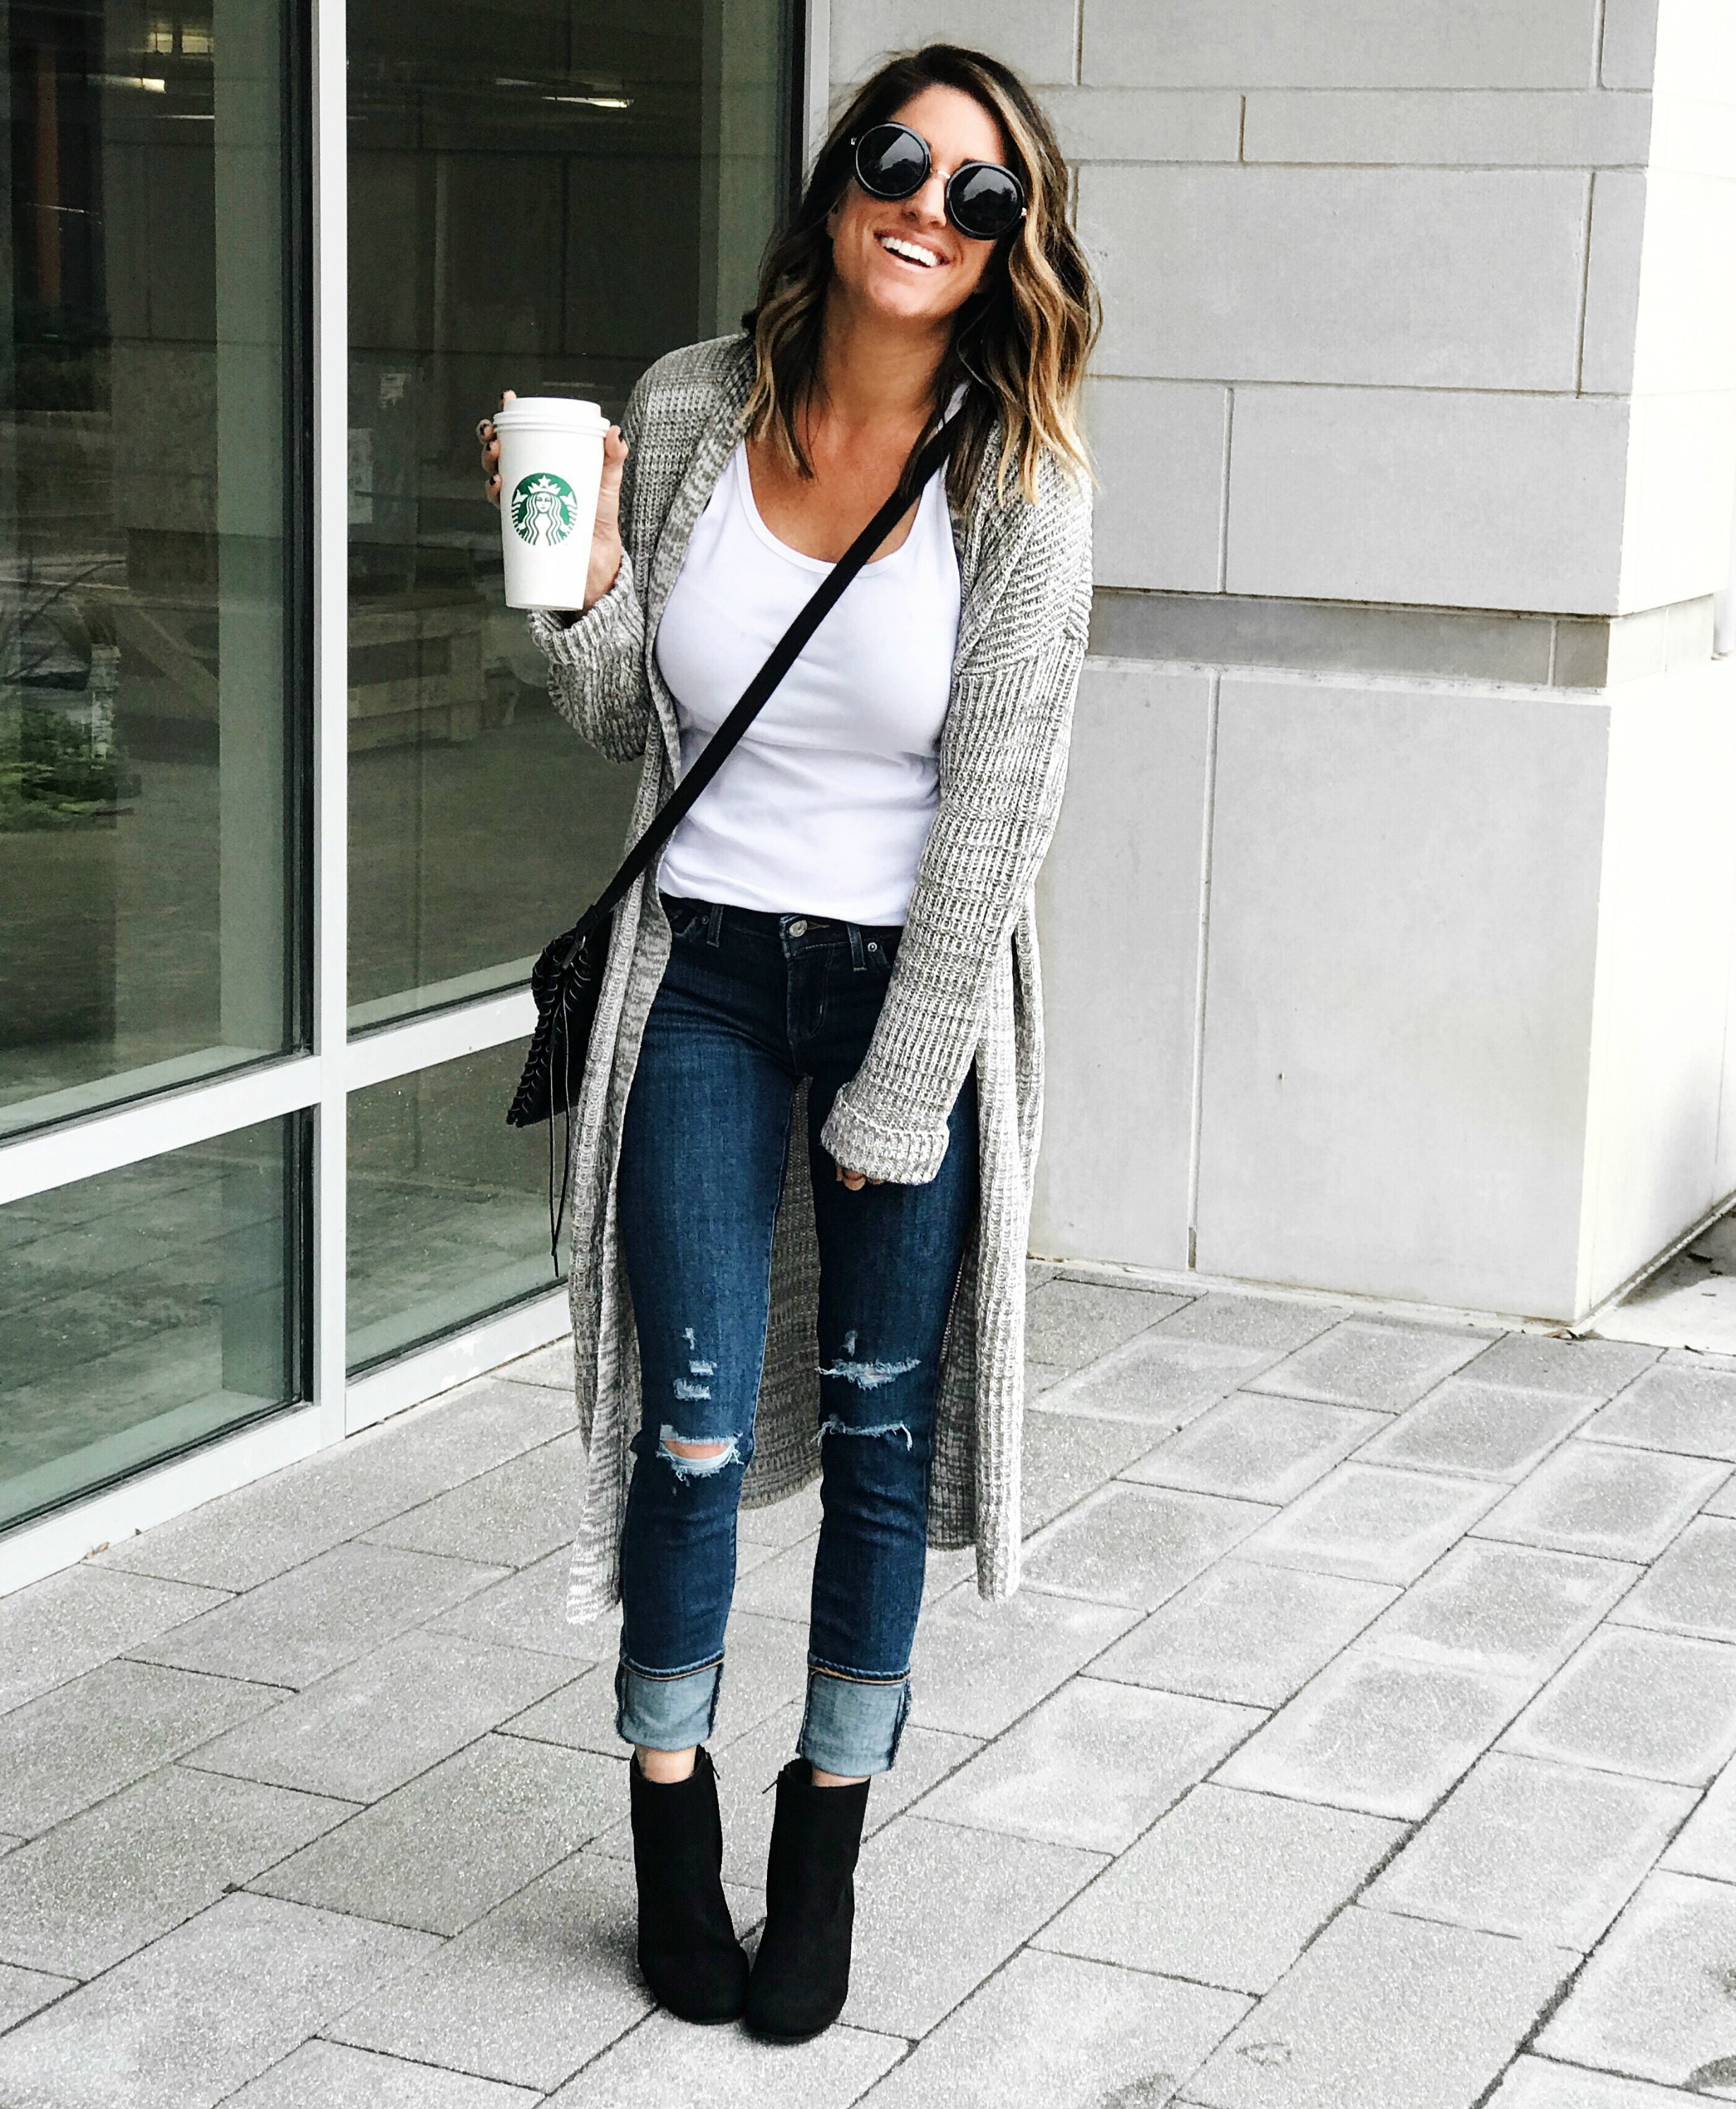 Cardigan, jeans, fall outfit